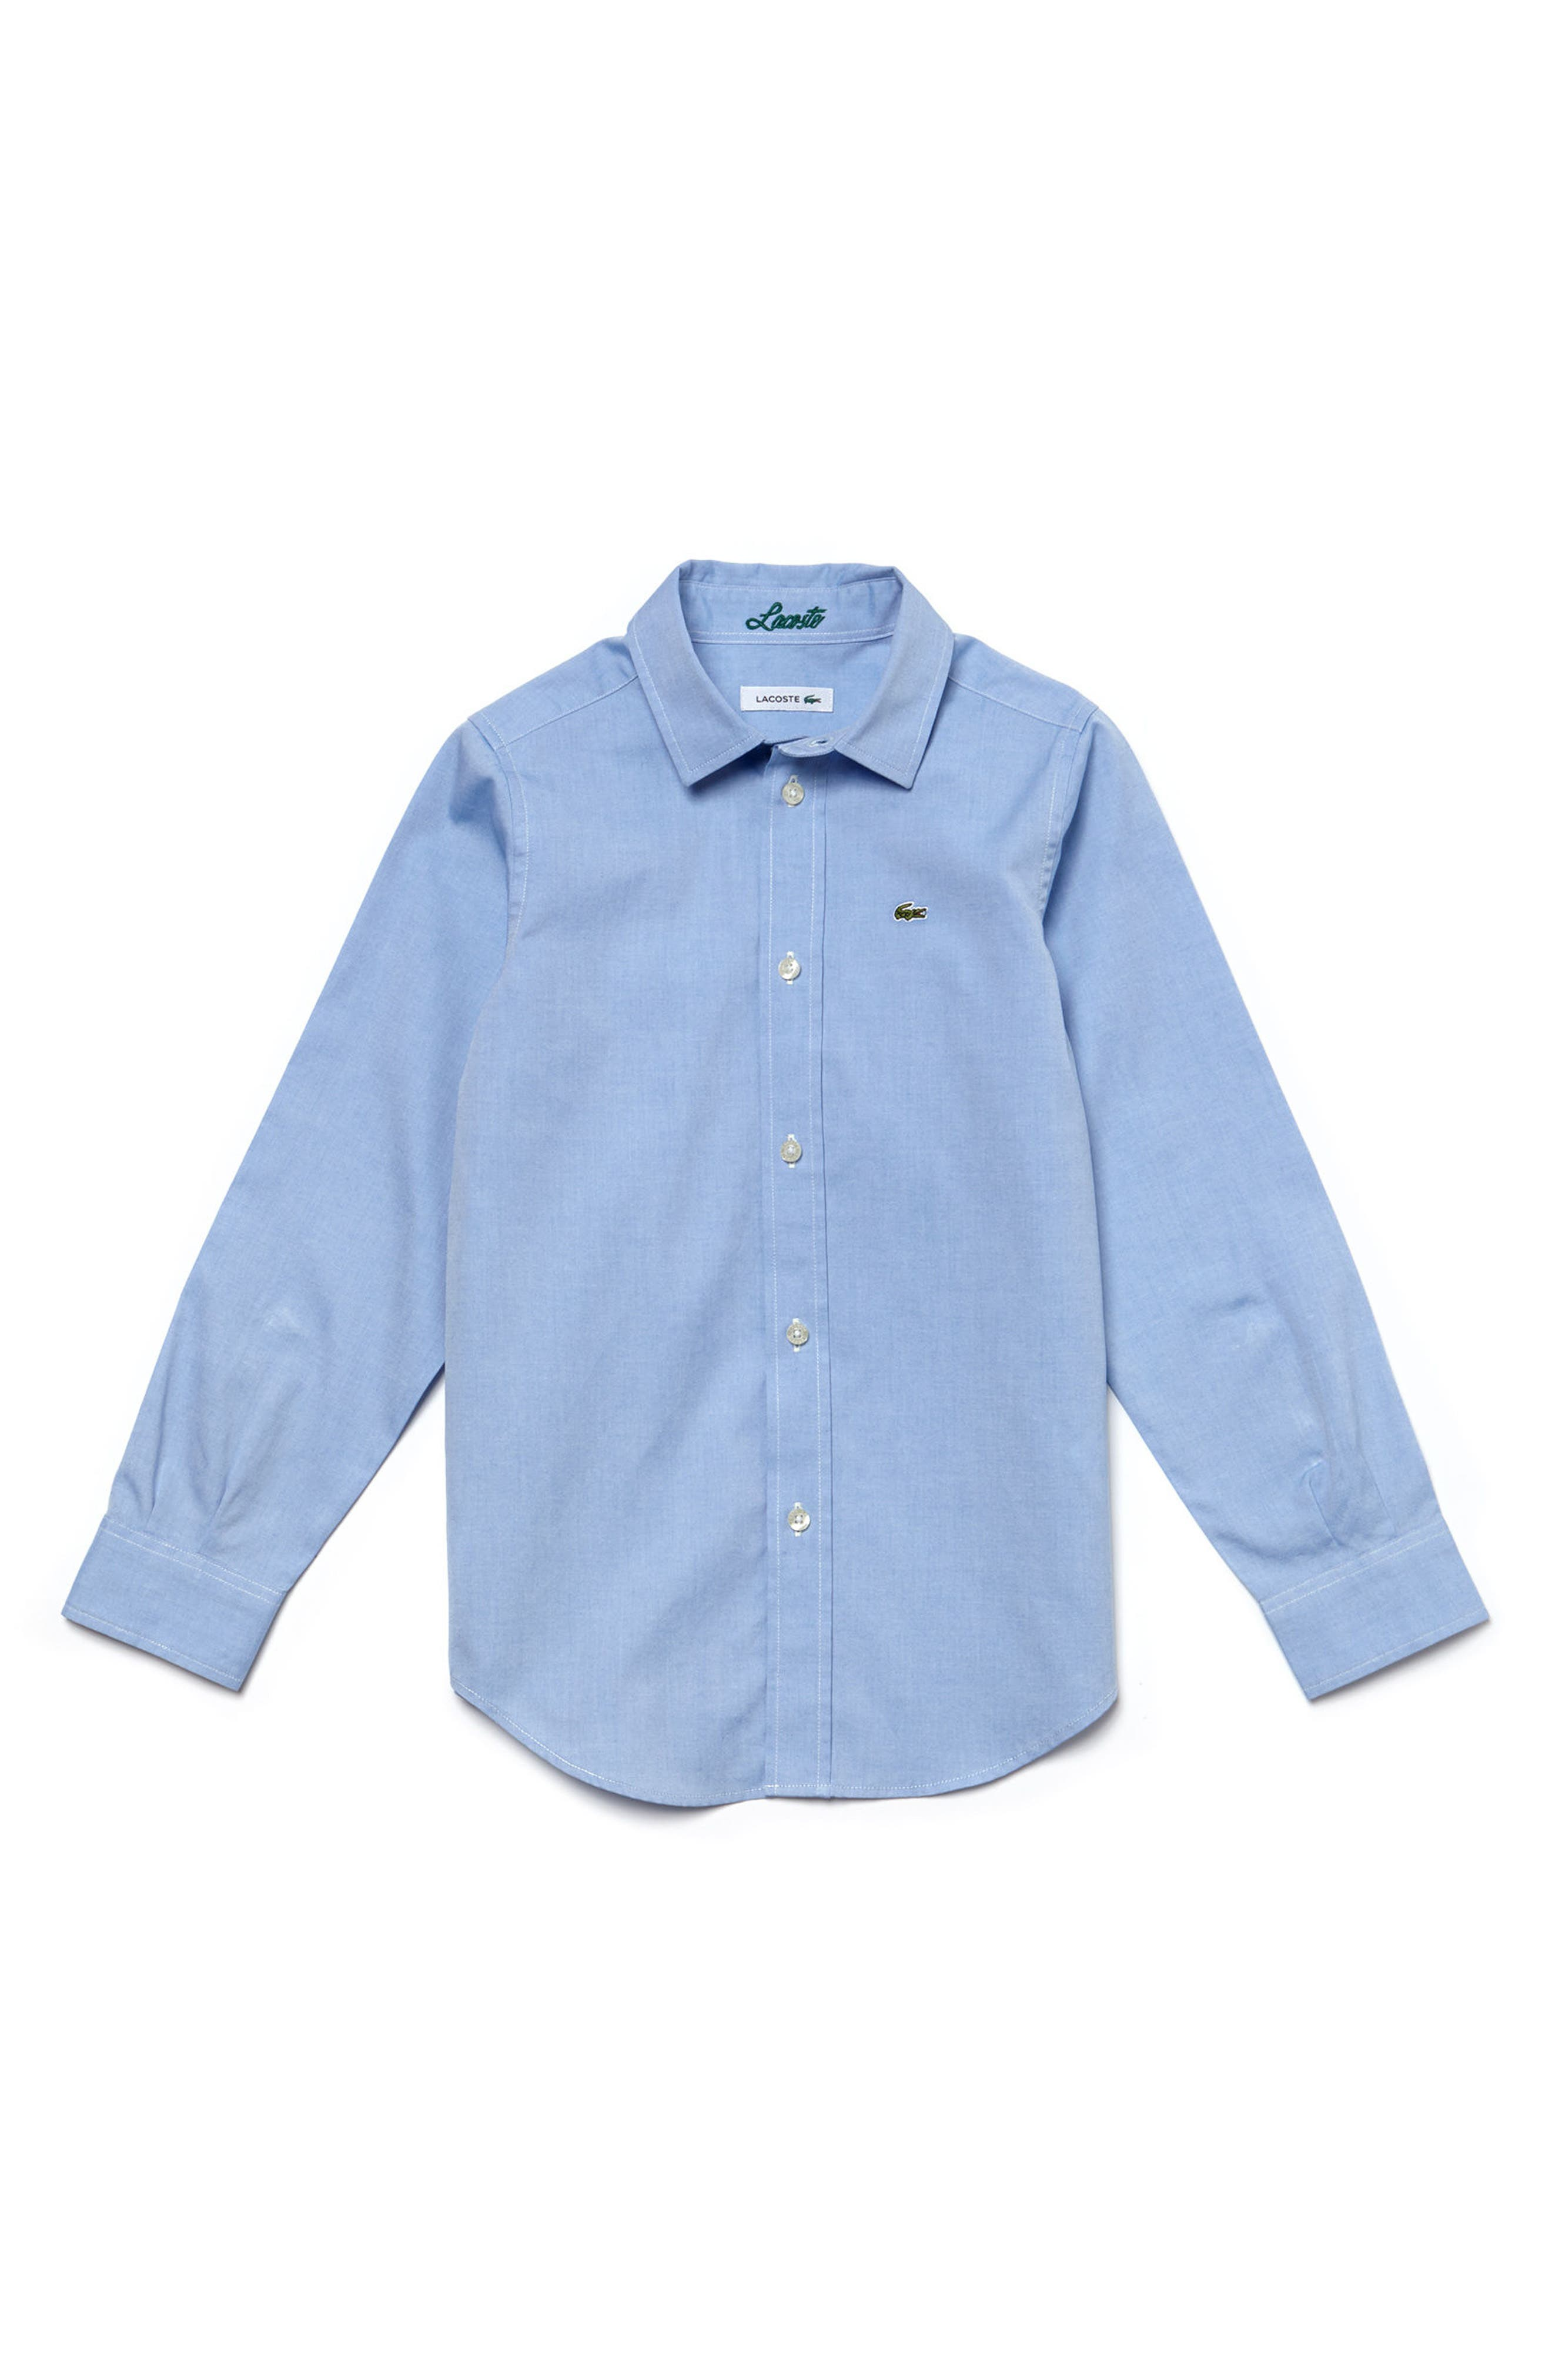 Alternate Image 1 Selected - Lacoste Classic Oxford Shirt (Little Boys)